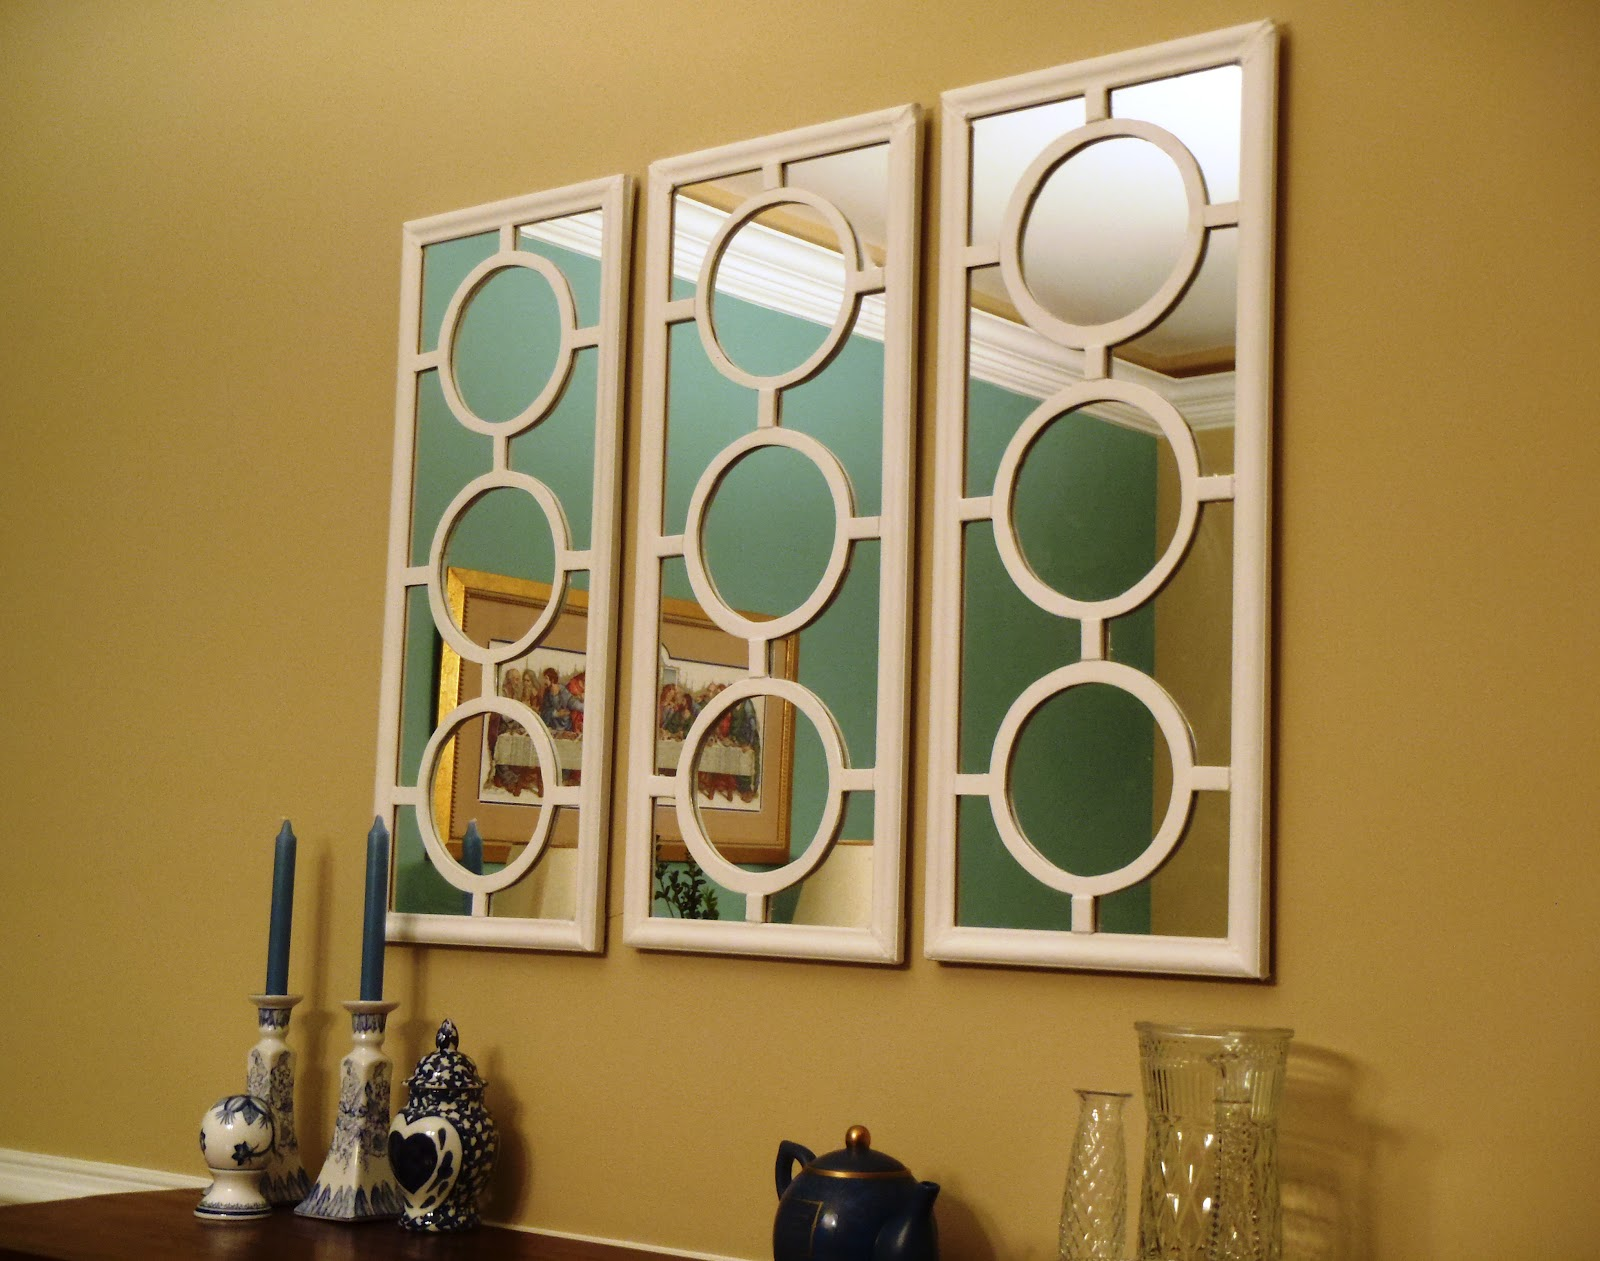 Lazy liz on less dining wall mirror decor for Mirror decor